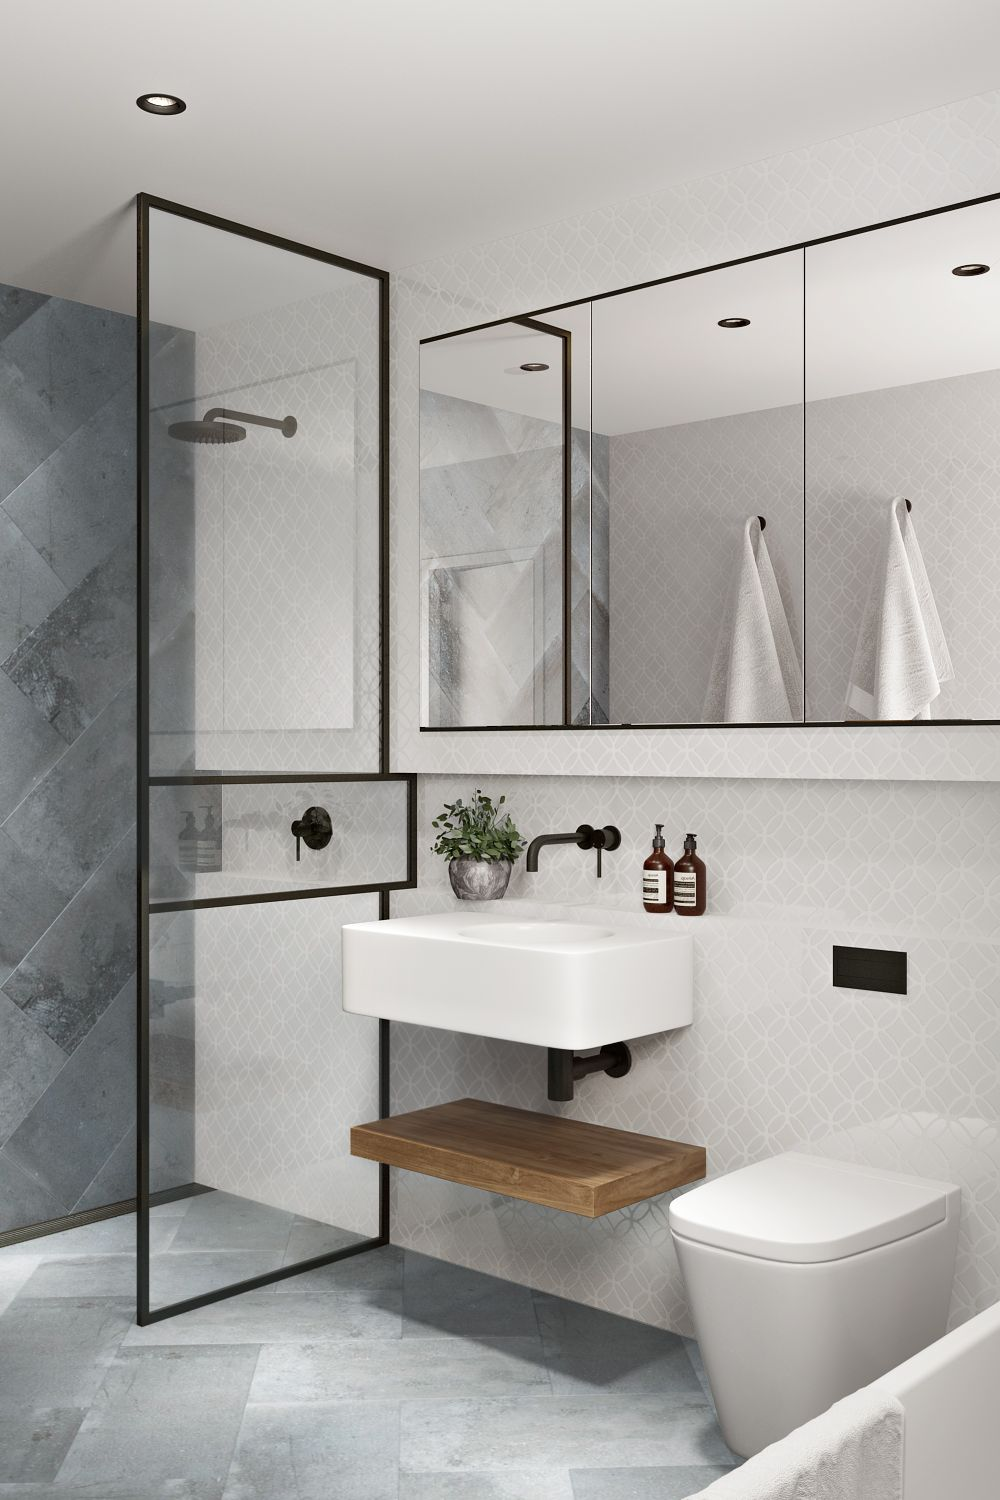 Pyrmont Gloss Round Mosaic Tile | Mosaic Tiles | TileCloud Bathrooms ...